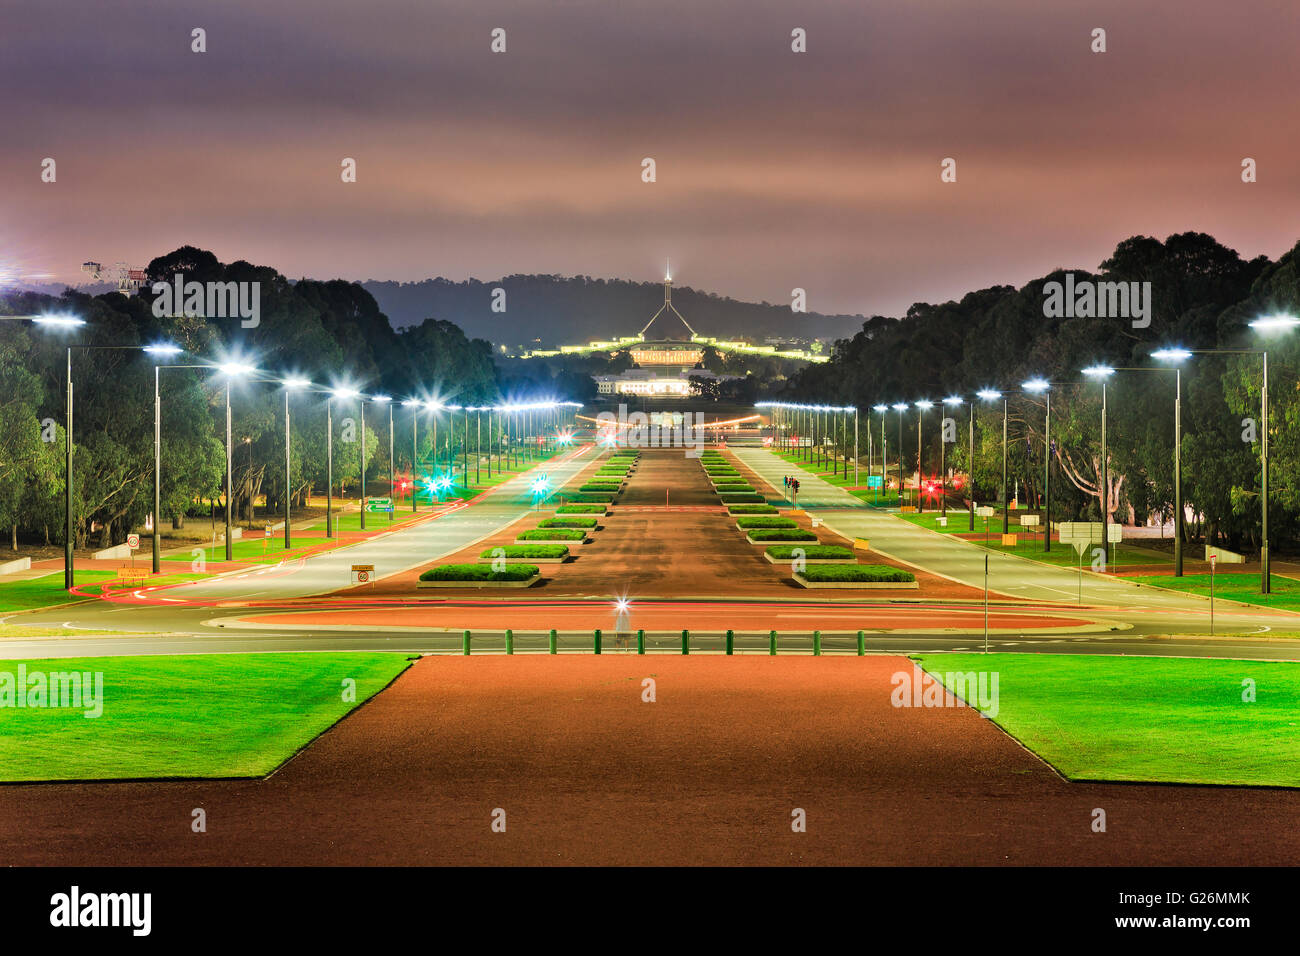 ANZAC parade wide road and street with bright illumination by light poles at sunrise in Canberra, Australia capital - Stock Image